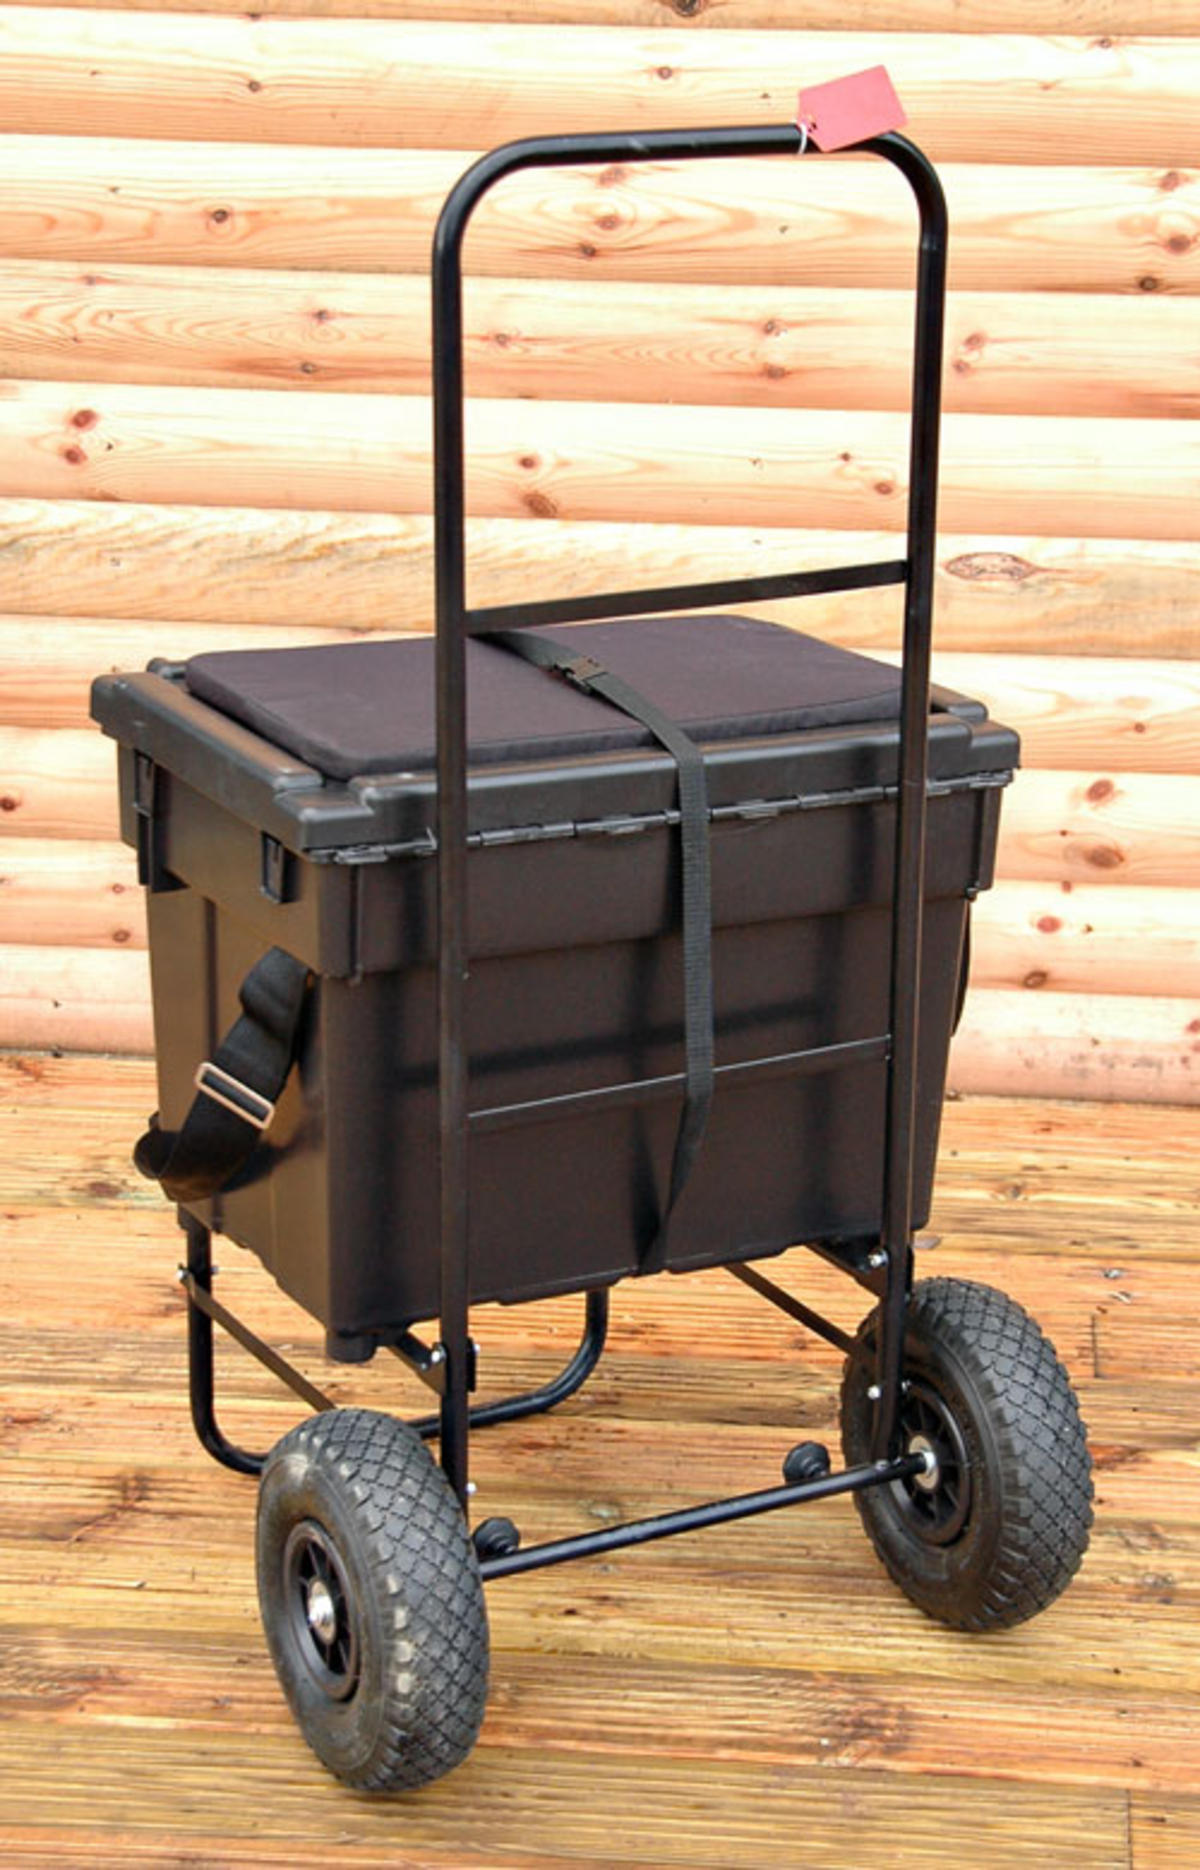 BISON FISHING SEAT BOX TROLLEY AND SEATBOX